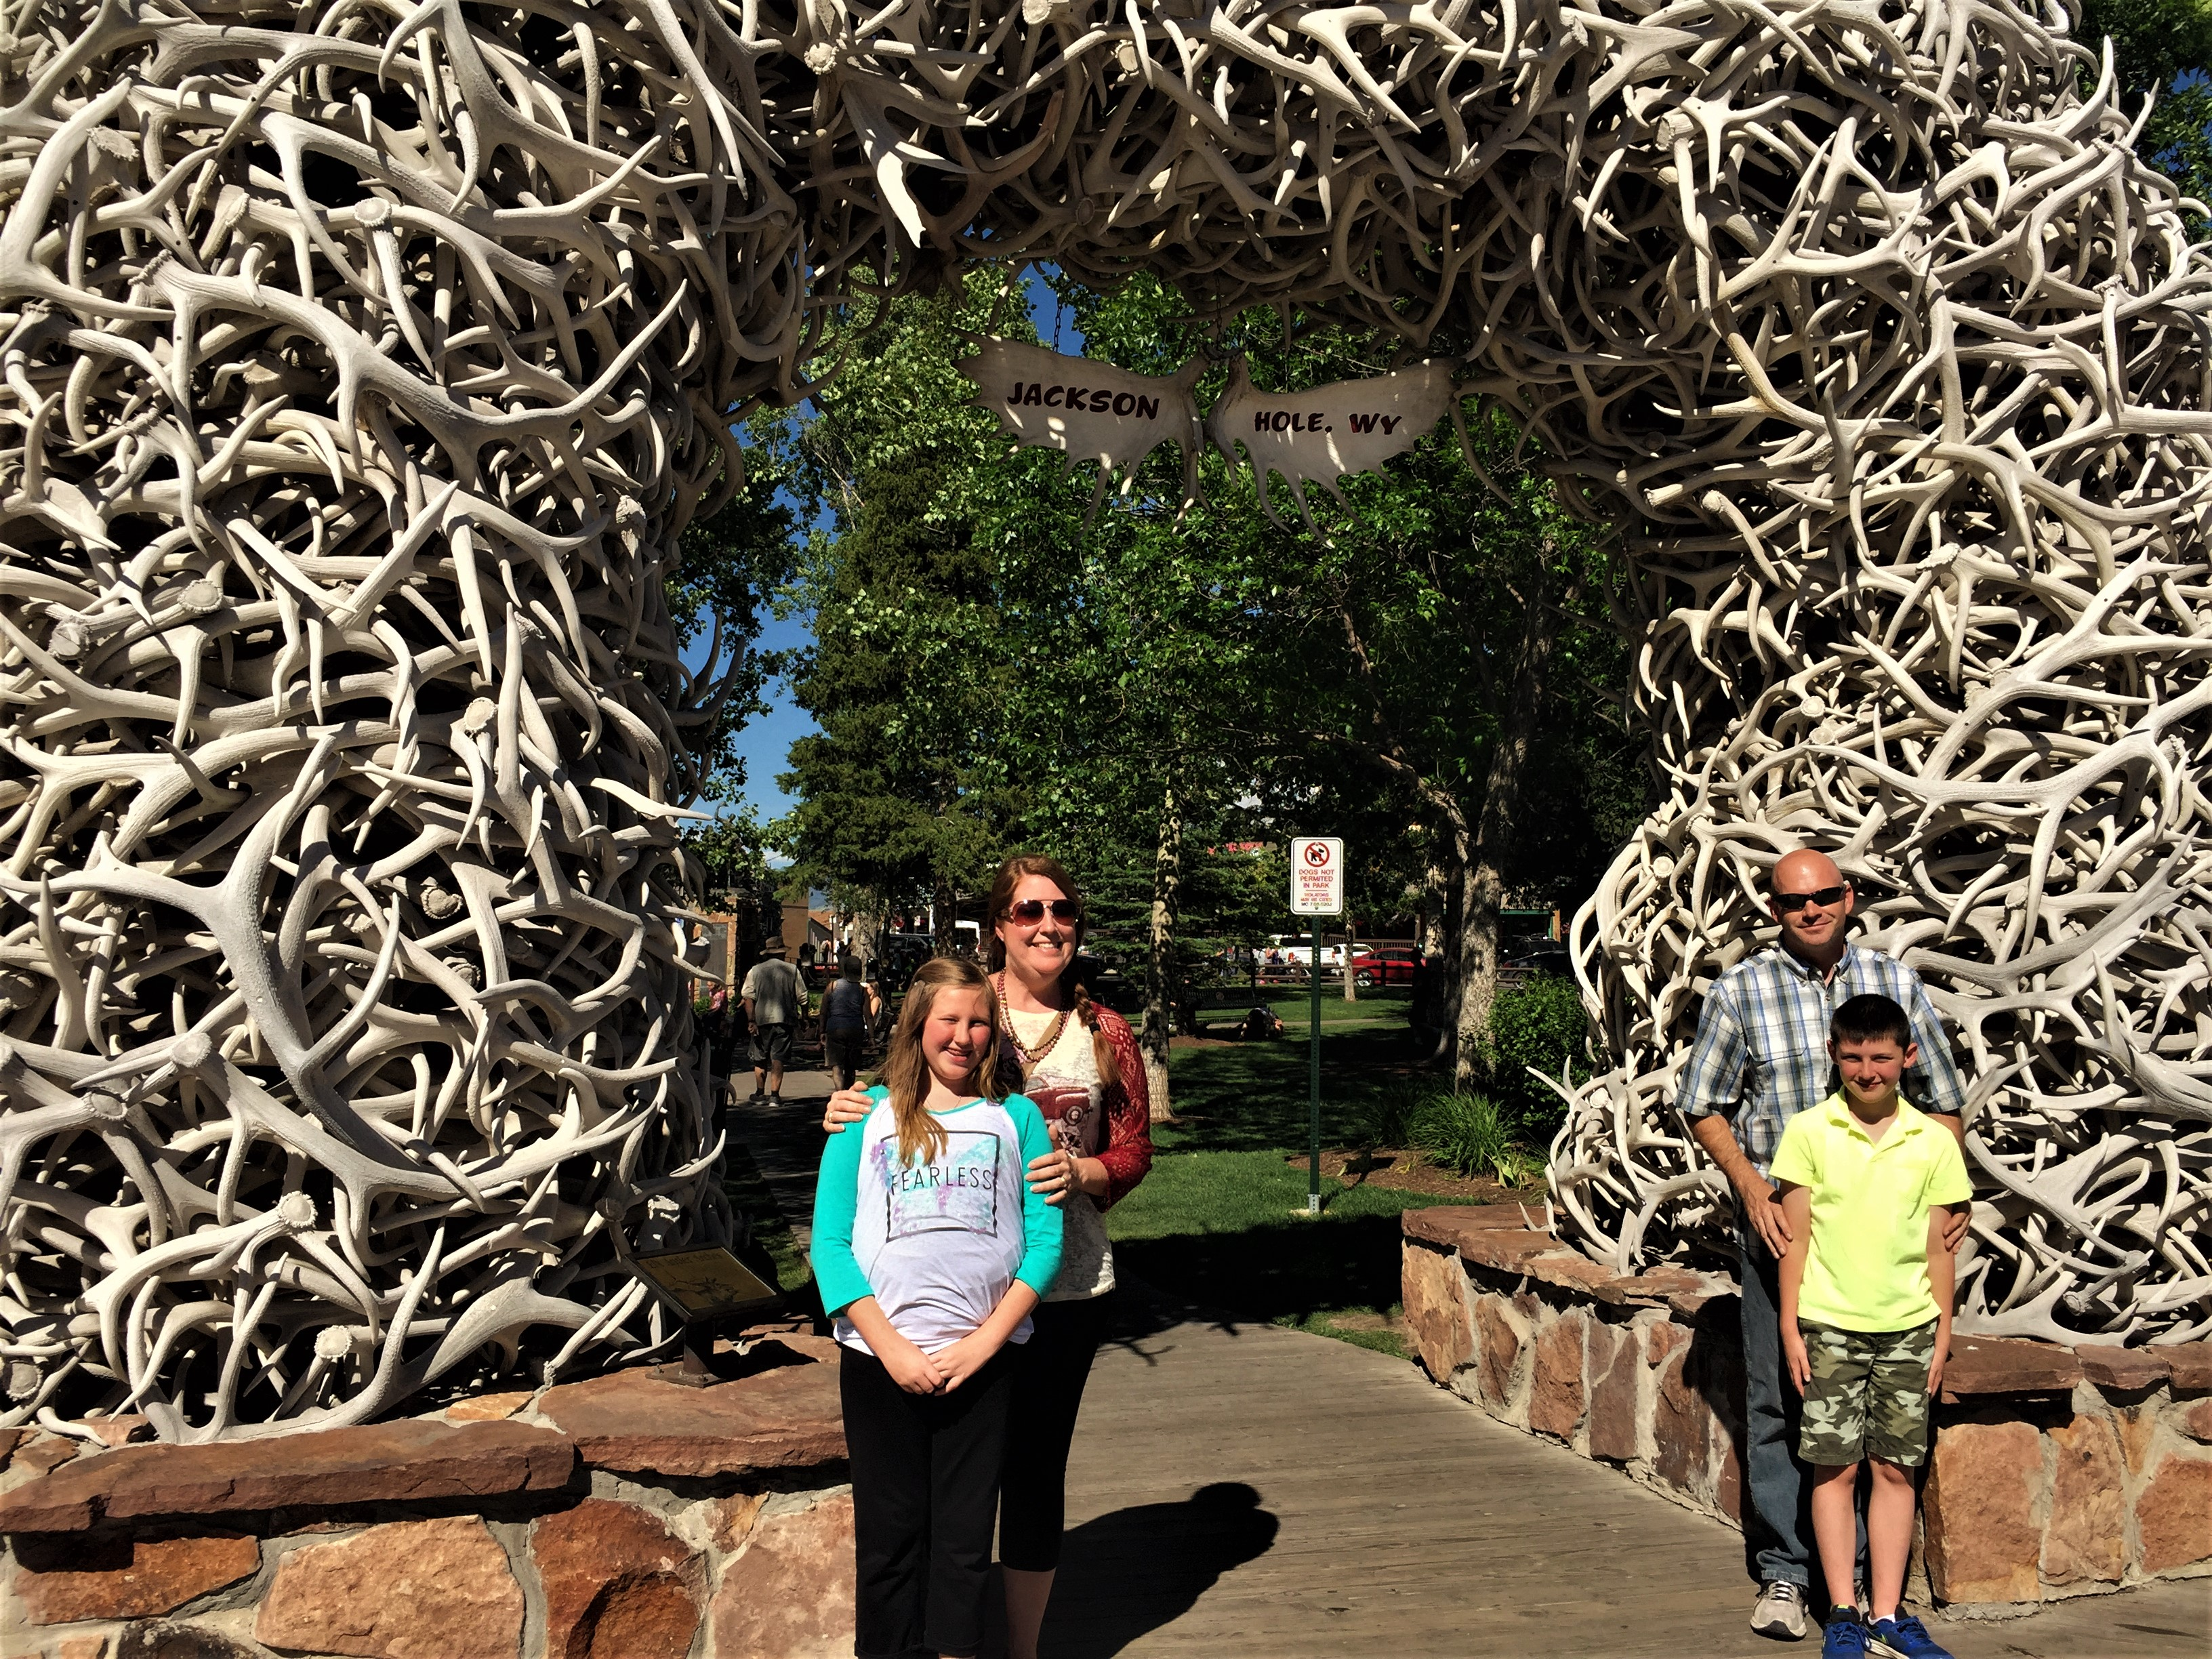 When we returned to Jackson, we went back to the center of town, walked along the wooden boardwalks and did a little shopping. There are many photo galleries, art galleries and tourist shops filling the blocks around the square. Two of our favorites were the Mangelsen Images of Nature Gallery and Teton Toys. These two stops were polar opposites. While visiting the gallery, we were amazed by the beautiful images of nature caught by Thomas D. Mangelsen, one of the world's premier nature photographers. The kids loved viewing all of his photographs, particularly the ones of wildlife. We were sure to keep the kids by our side, because we were afraid someone would touch something they should not, but the worry was worth it! After visiting several more stores and doing a little window shopping, we stumbled across Teton Toys. The kids loved this store, and we did not have to worry about them touching anything. There were toys out for them to play with, and they particularly loved the large selection of stuffed animals depicting local wildlife. Of course, the kids could not leave without purchasing a stuffed gray wolf and an elk.